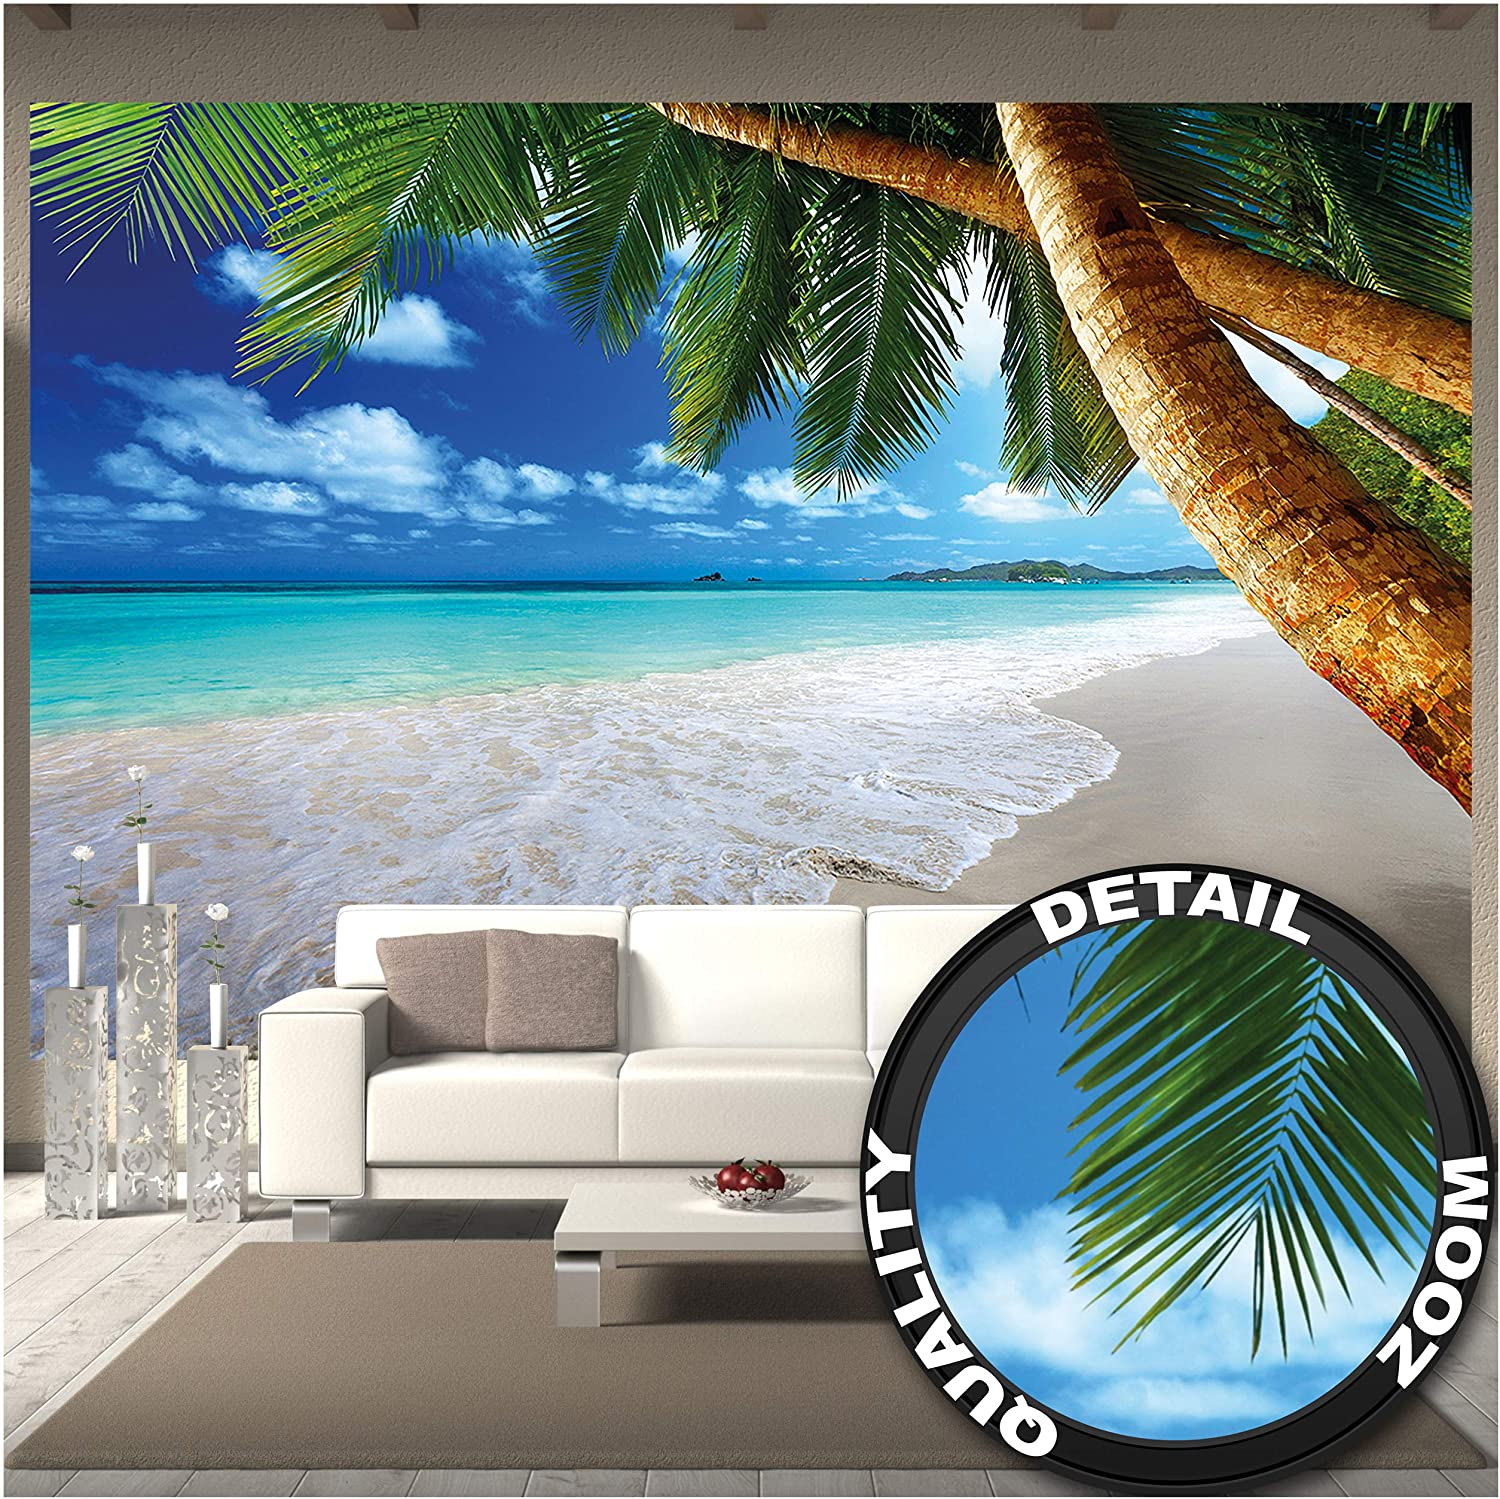 GREAT ART Large Photo Wallpaper Wallpaper – Palm Trees Beach – Decoration Caribbean Bay Tropic Paradise Nature Island Palms Tropical Isle Landscape Image Decor Wall Mural (132.3x93.7in - 336x238cm)